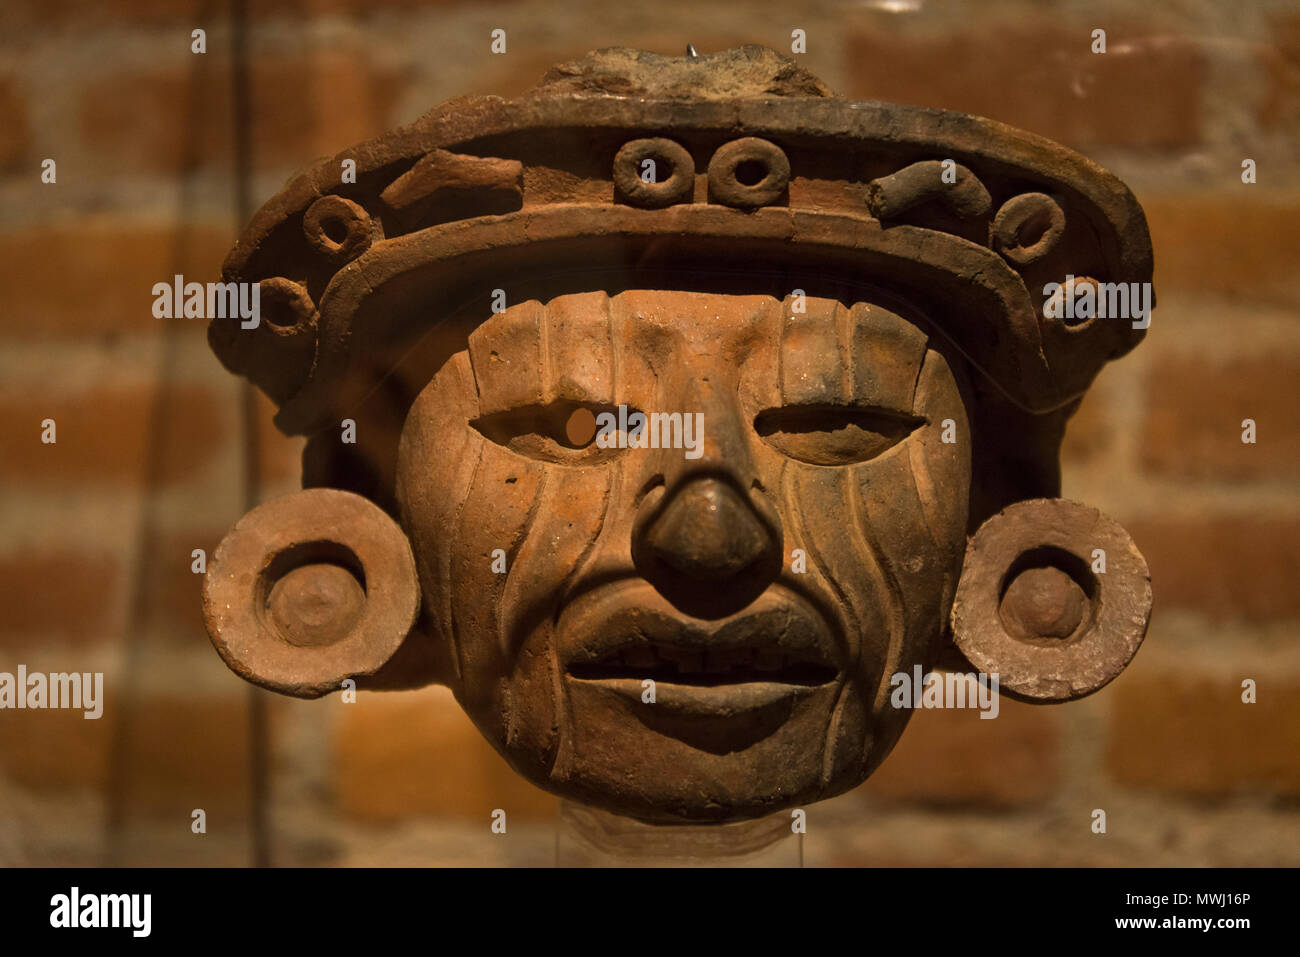 Museum of Cultures of Oaxaca, mask with human face, Oaxaca, Mexico - Stock Image